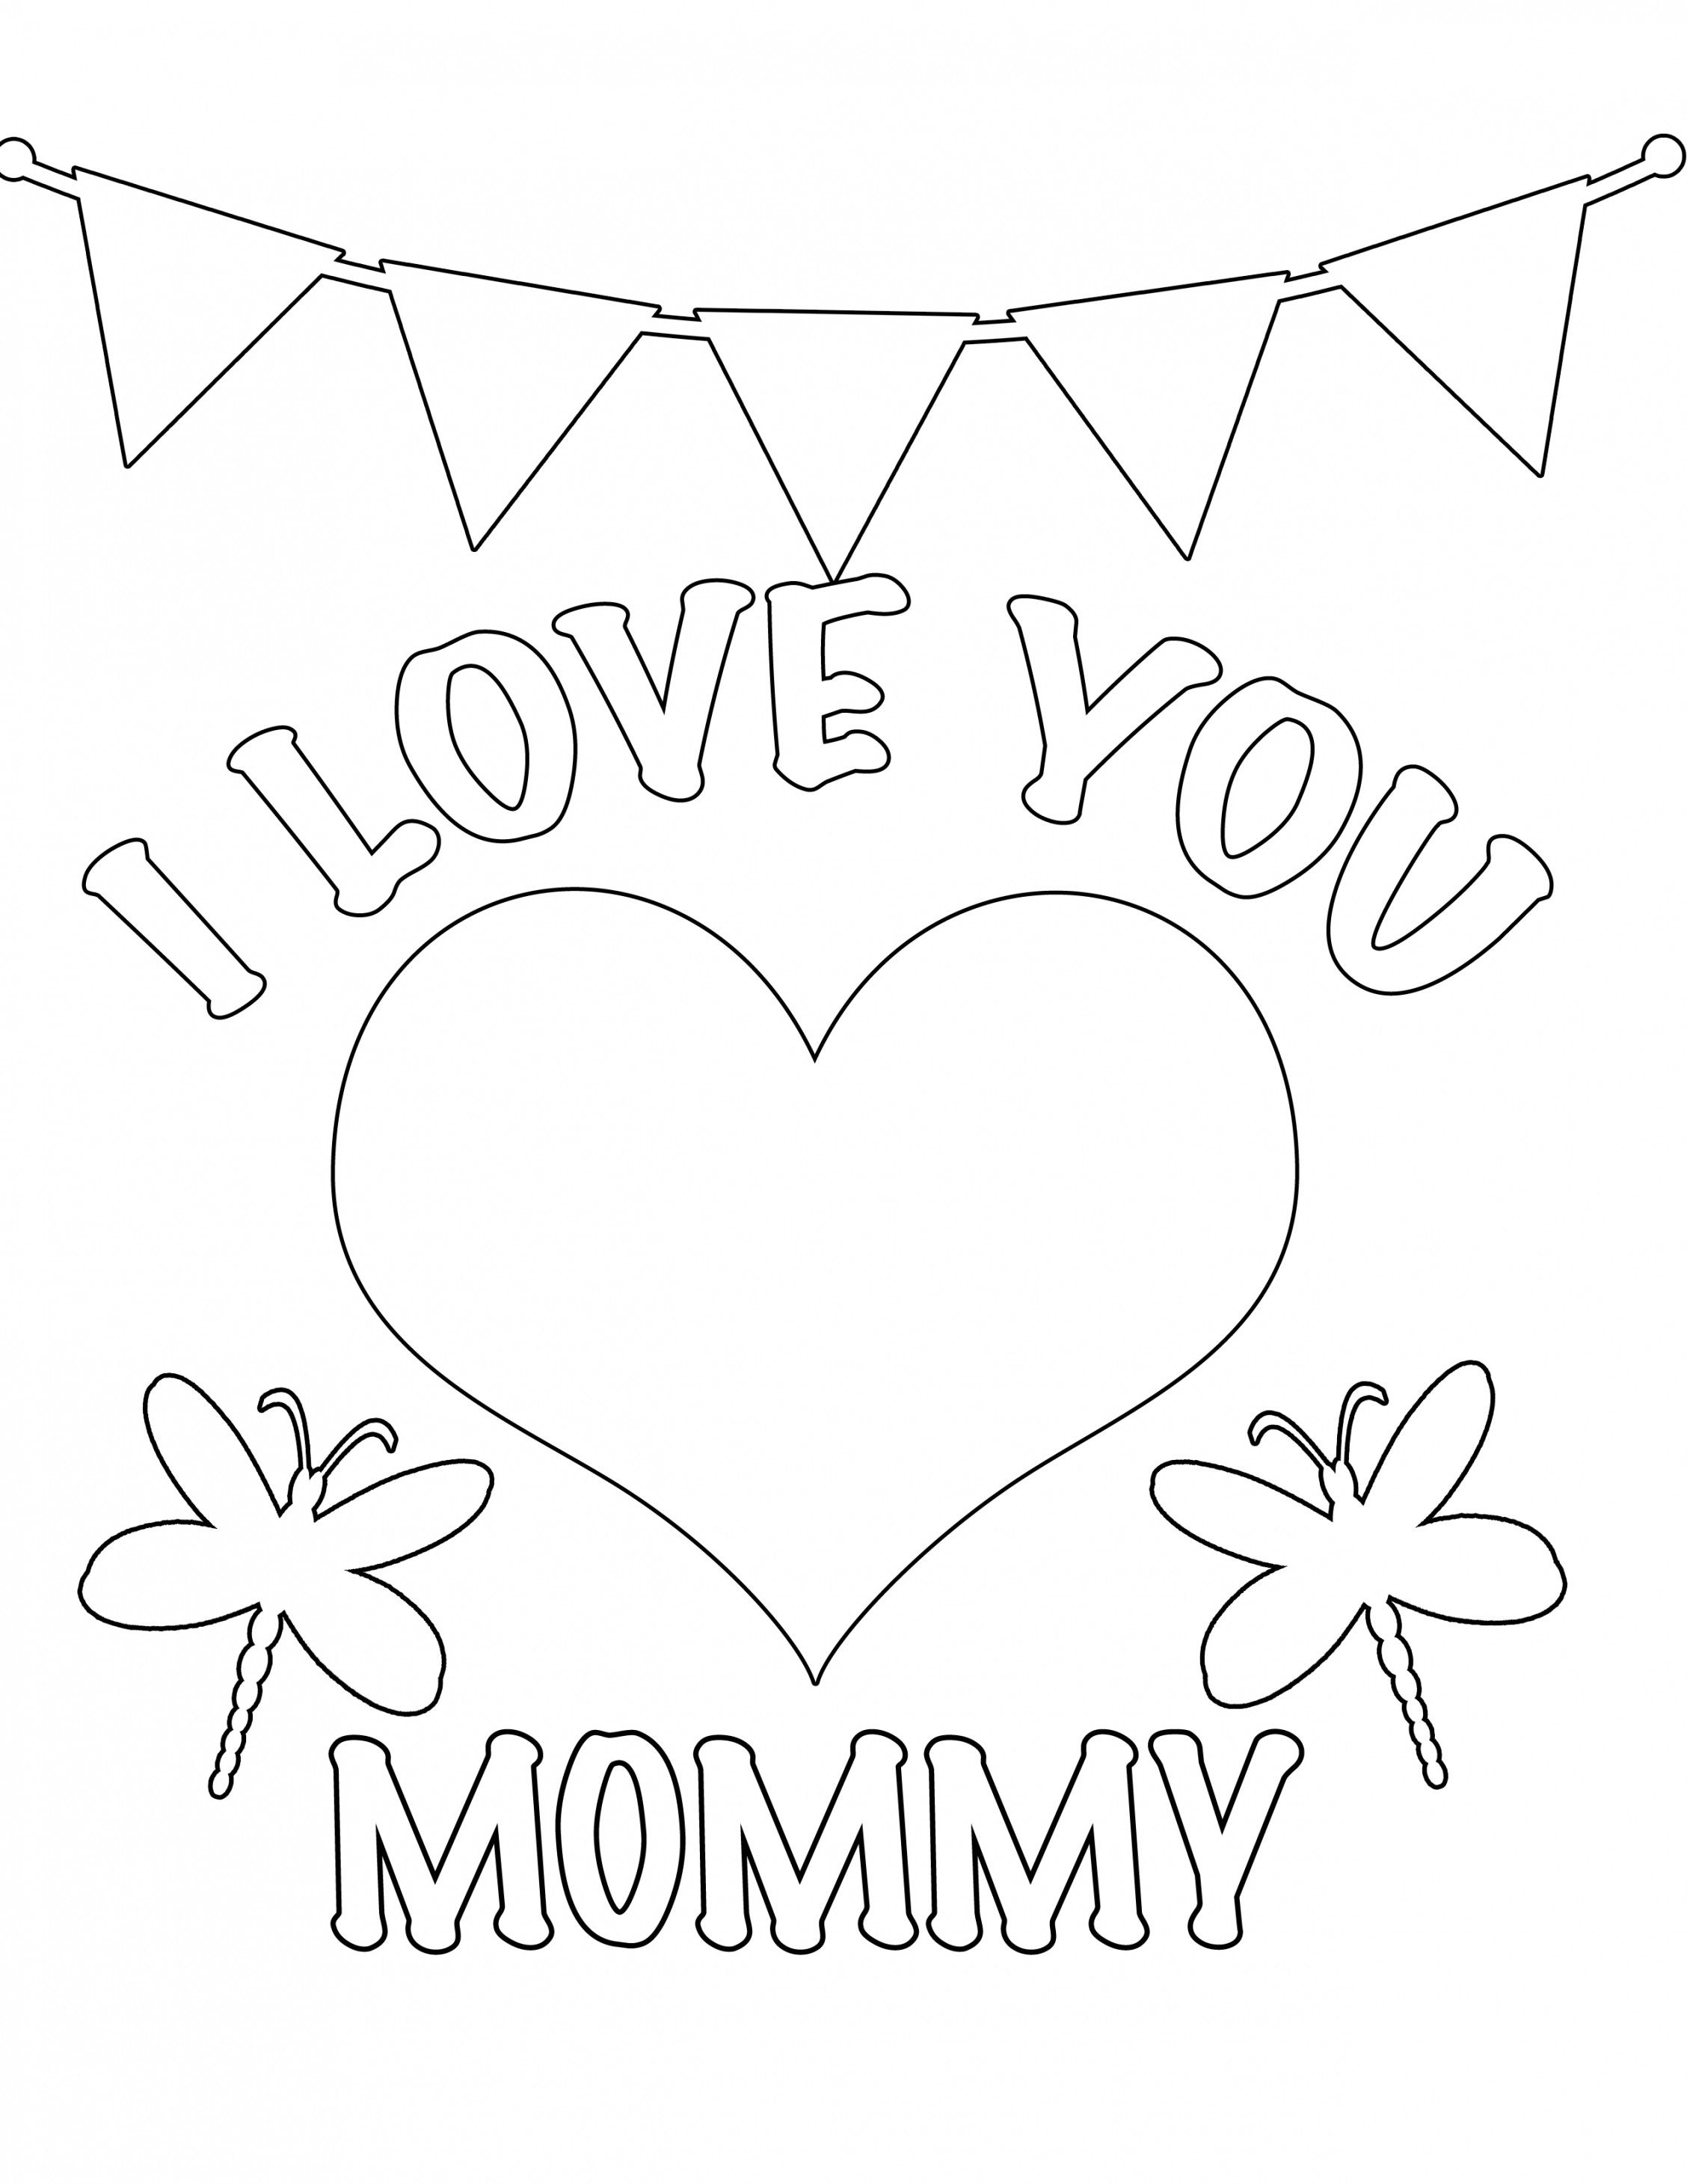 preschool coloring pages valentines day | Valentines Day Coloring Pages For Preschool | Valentines ...